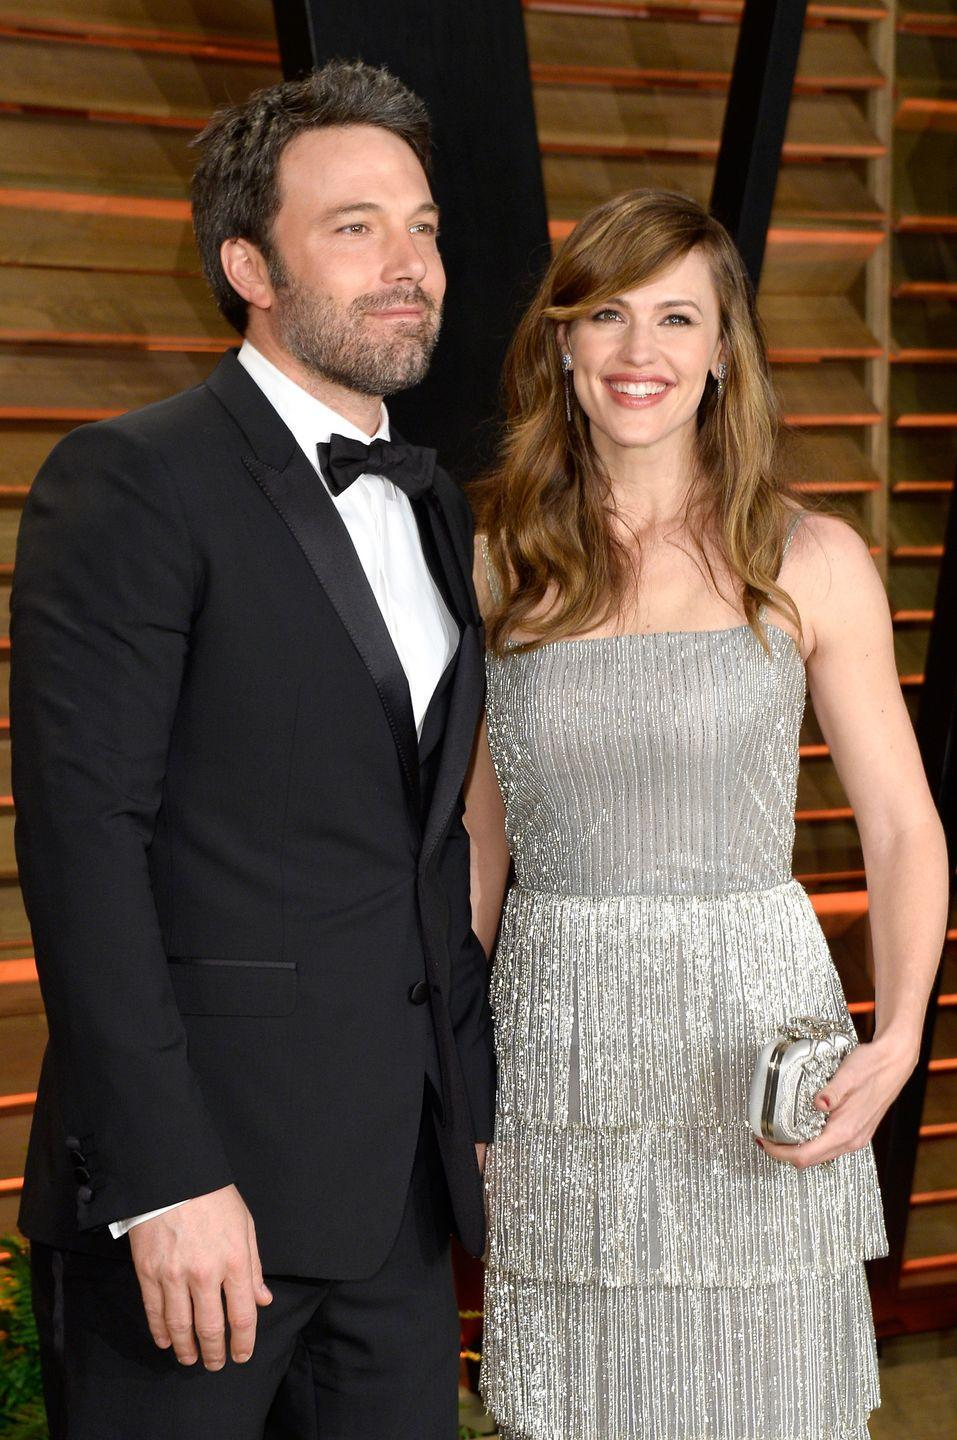 """<p>Ben fell in love with his future wife, Jennifer Garner, on the set of Daredevil. 'We met on Pearl Harbor, which people hate, but we fell in love on Daredevil,' Ben told <a href=""""https://www.playboy.com/read/ben-affleck-batman-playboy-interview"""" rel=""""nofollow noopener"""" target=""""_blank"""" data-ylk=""""slk:Playboy"""" class=""""link rapid-noclick-resp"""">Playboy</a>. 'By the way, she won most of the fights in the movie, which was a pretty good predictor of what would happen down the road—my wife, holding swords and beating the living shit out of me.'</p><p>The TL;DR version: Jen and Ben <a href=""""http://people.com/celebrity/ben-affleck-and-jennifer-garner-are-getting-divorced/"""" rel=""""nofollow noopener"""" target=""""_blank"""" data-ylk=""""slk:split in 2015"""" class=""""link rapid-noclick-resp"""">split in 2015</a>, tried to work things out, went to couple's therapy, called off the divorce, but ultimately divorced in 2017.</p>"""